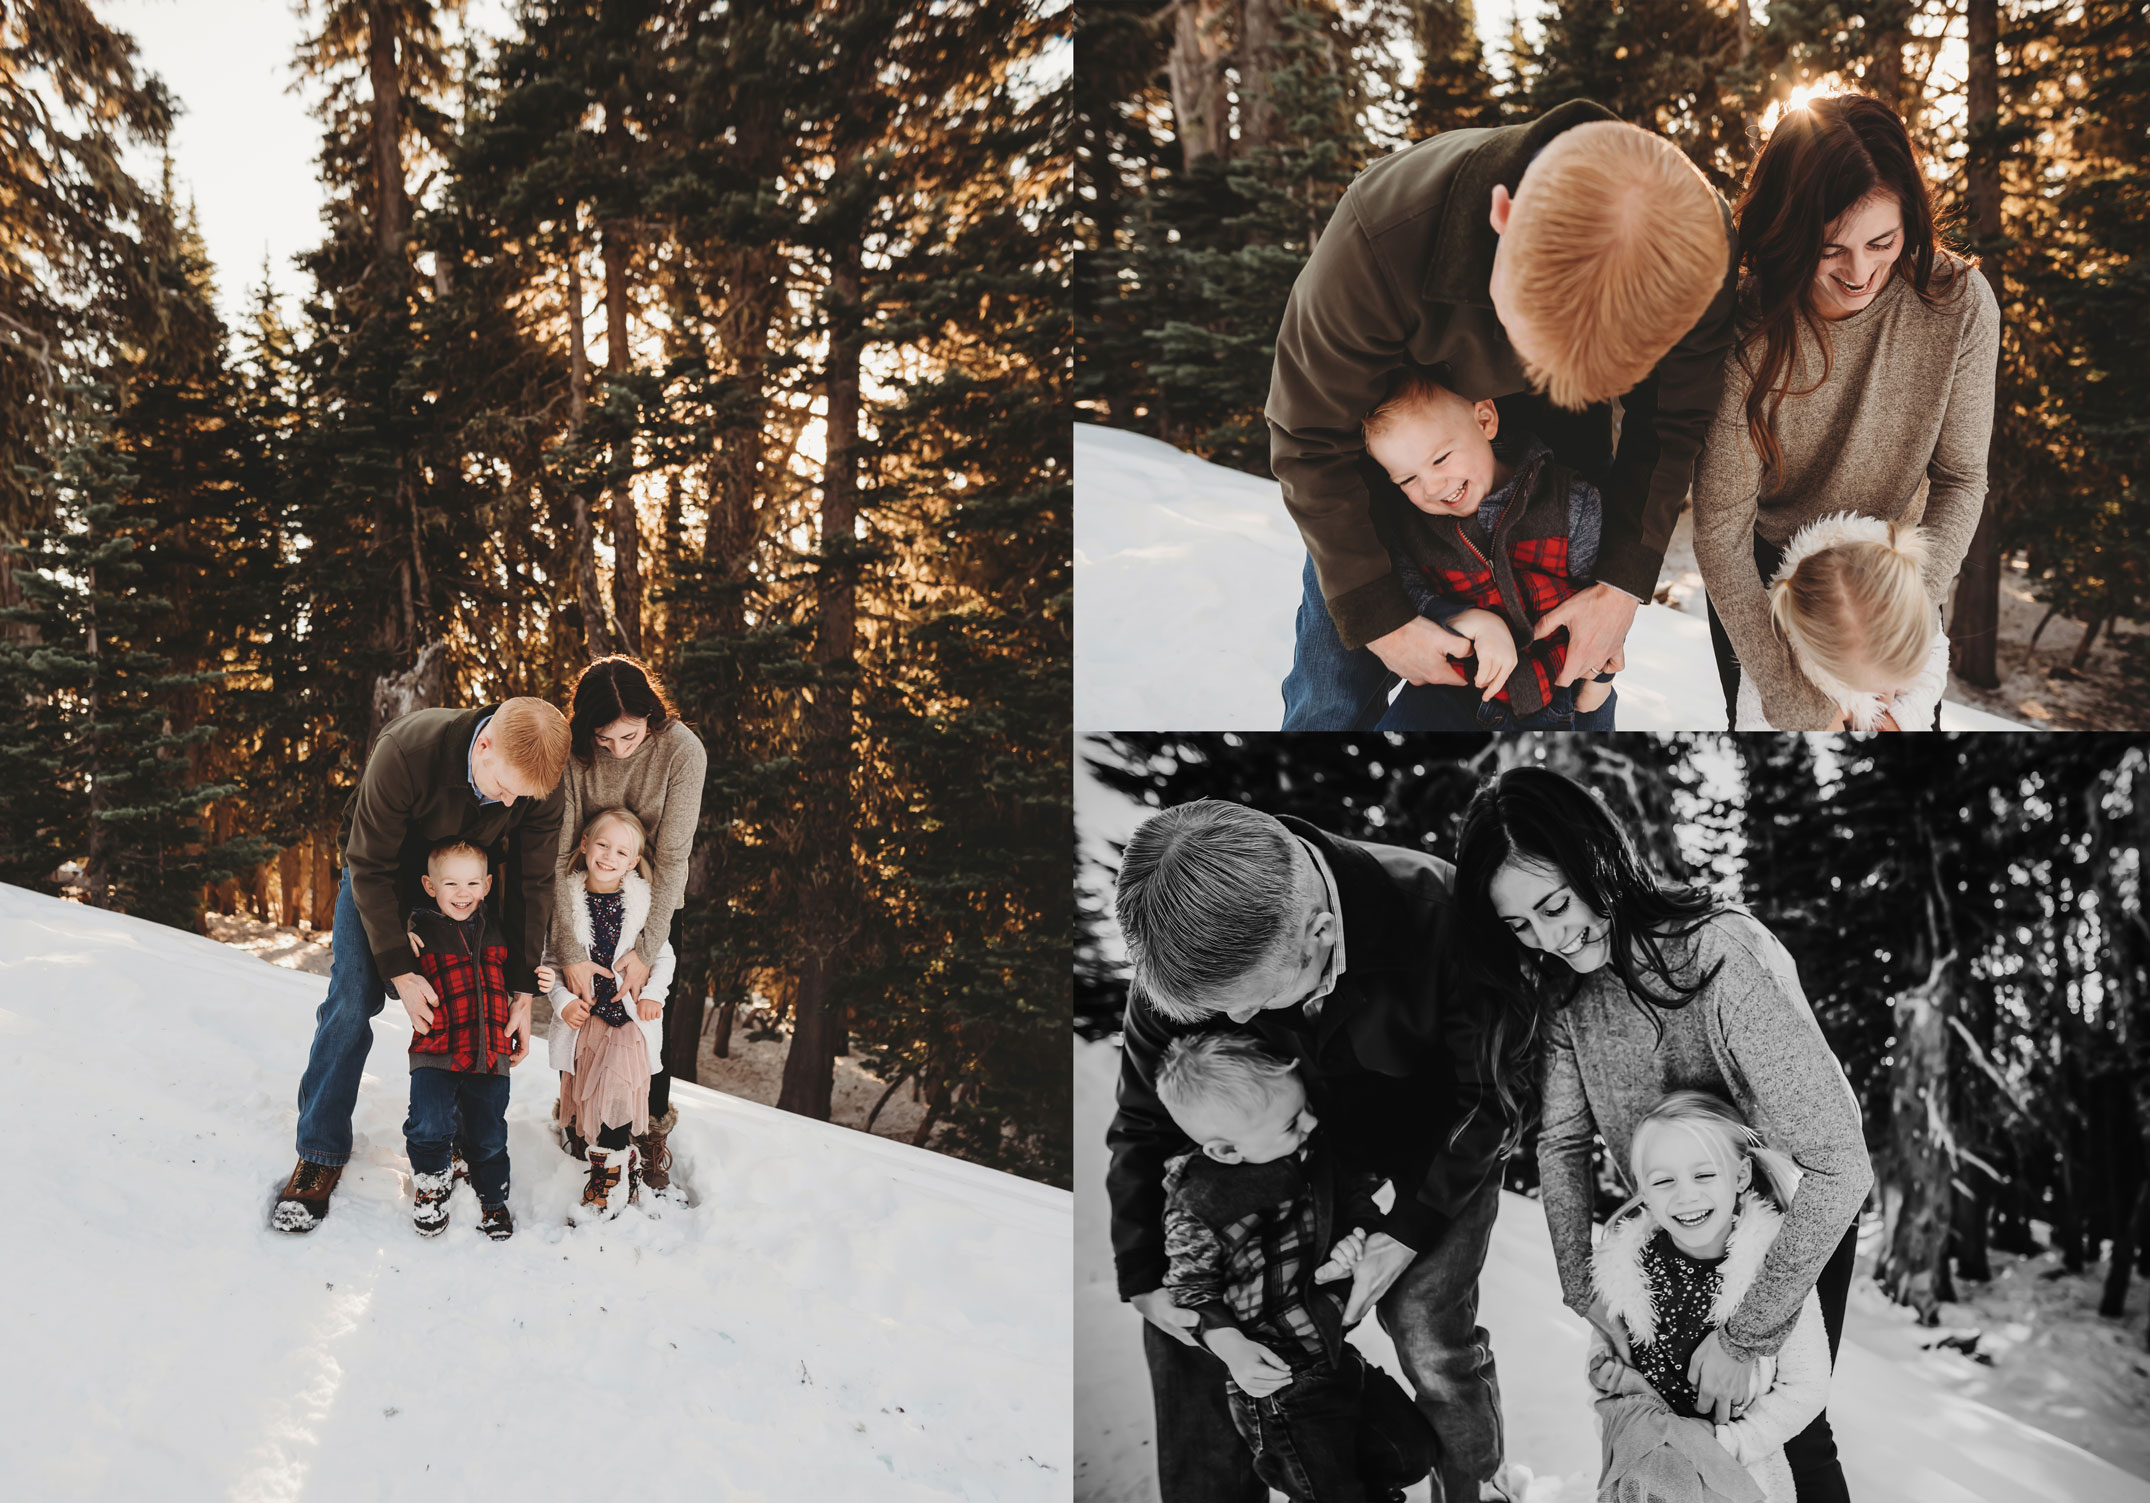 snuggly family photo session in the snow